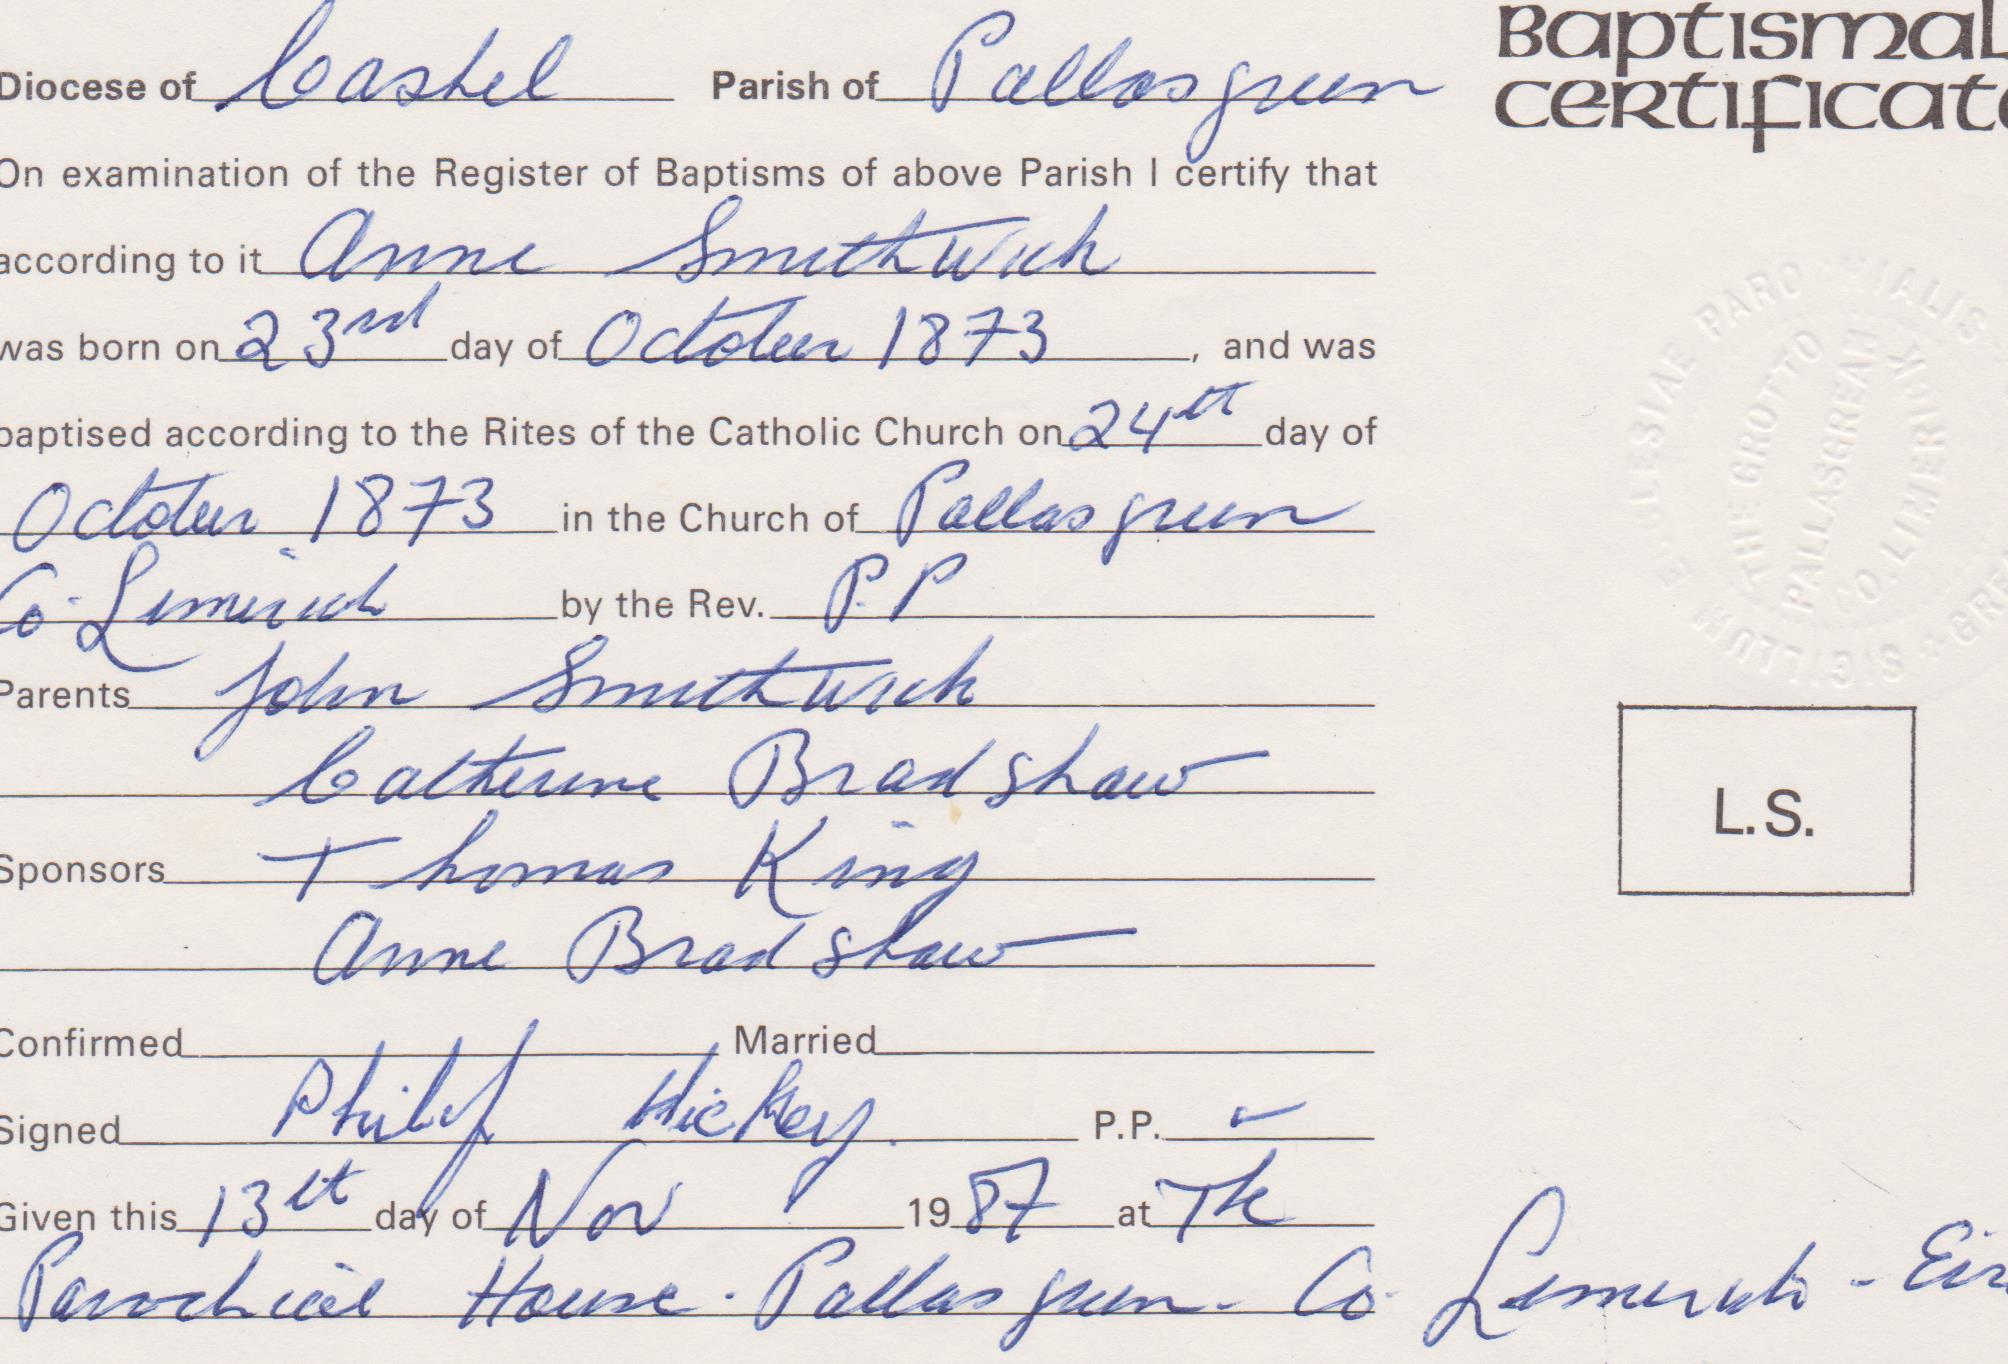 Documents Anne Smithwick Birth And Baptism Certificate